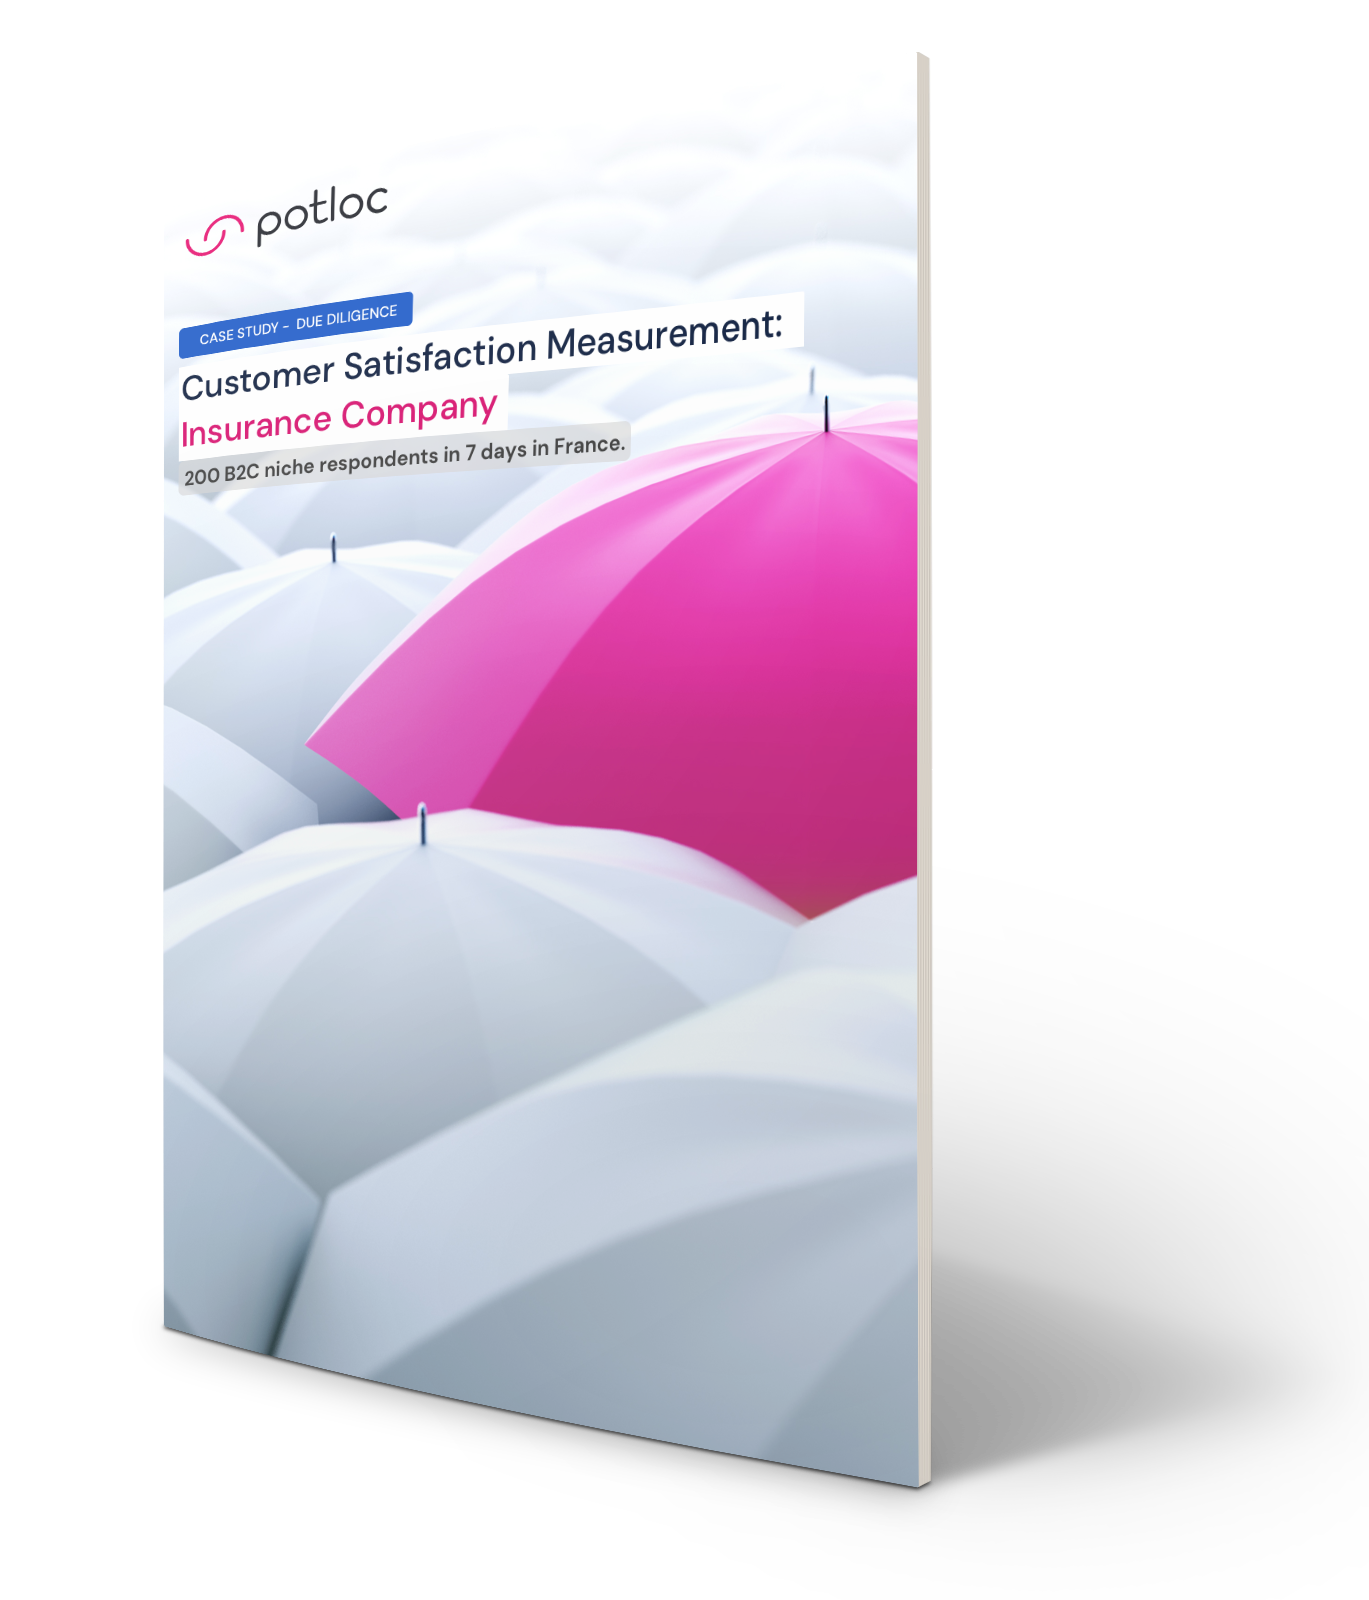 Coverbook_Potloc_Case_Study_Insurance_b2c-consulting_customer-satisfaction-1